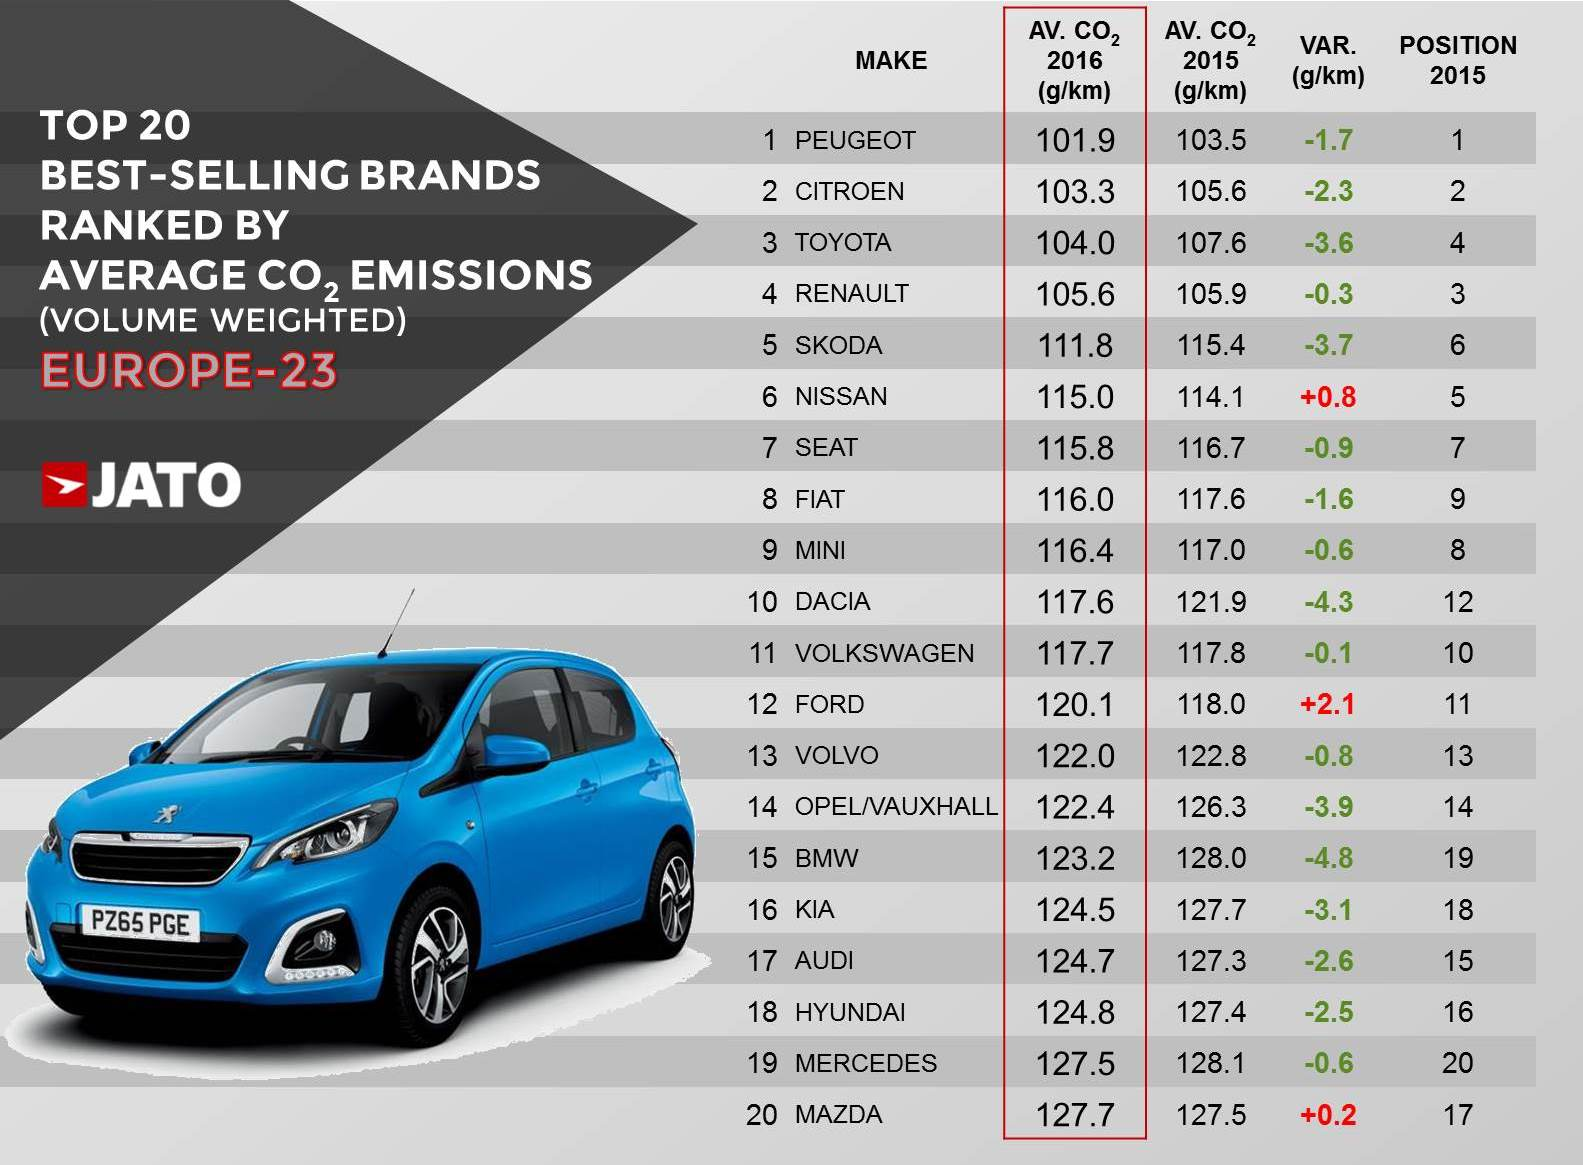 Peugeot The Leading Brand For Average Co2 Emissions As